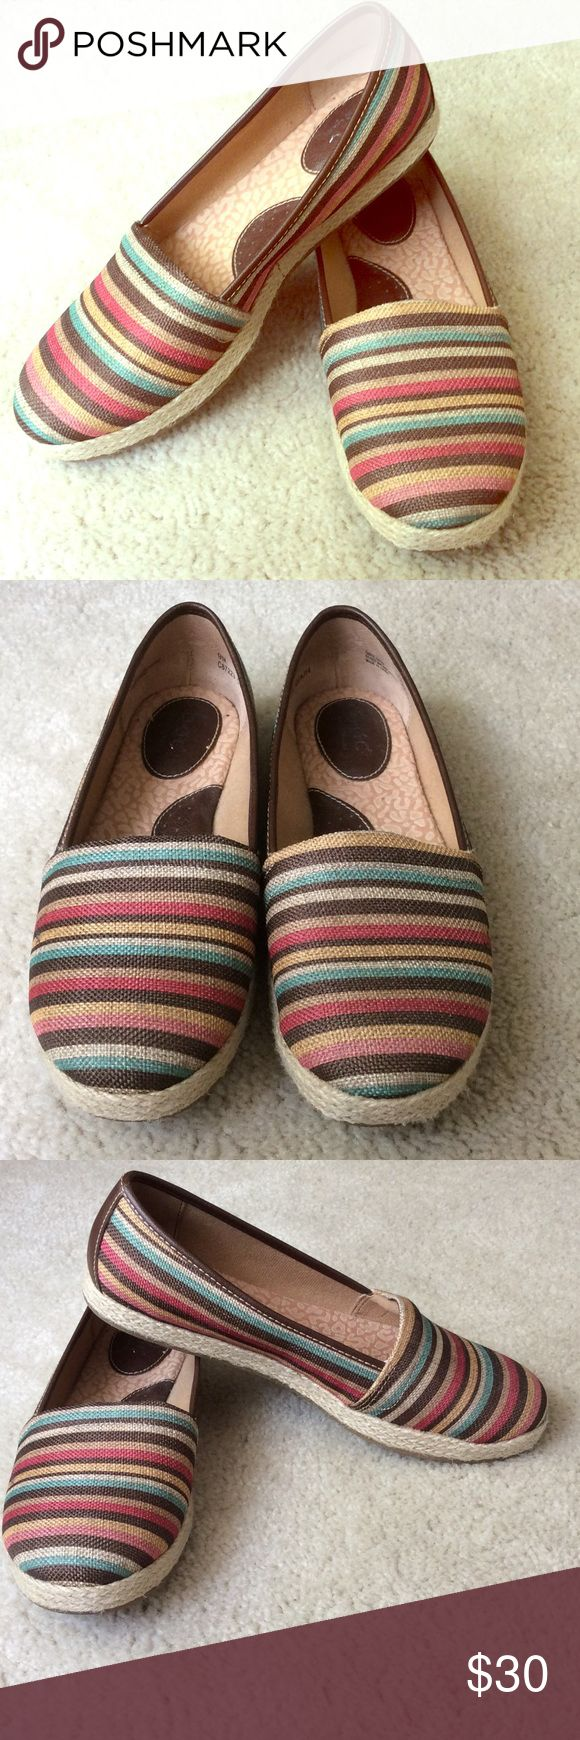 Born (BOC) Espadrilles multicolor canvas upper. Born (BOC) Espadrilles with muted pink, corral, teal, yellow, brown, and beige stripes on sturdy canvas (not flimsy!) with weave around base of the shoe. Great for year round! Clean and smoke free home. Barely worn! Great with jeans, shorts, capris and skirts! Born Shoes Espadrilles